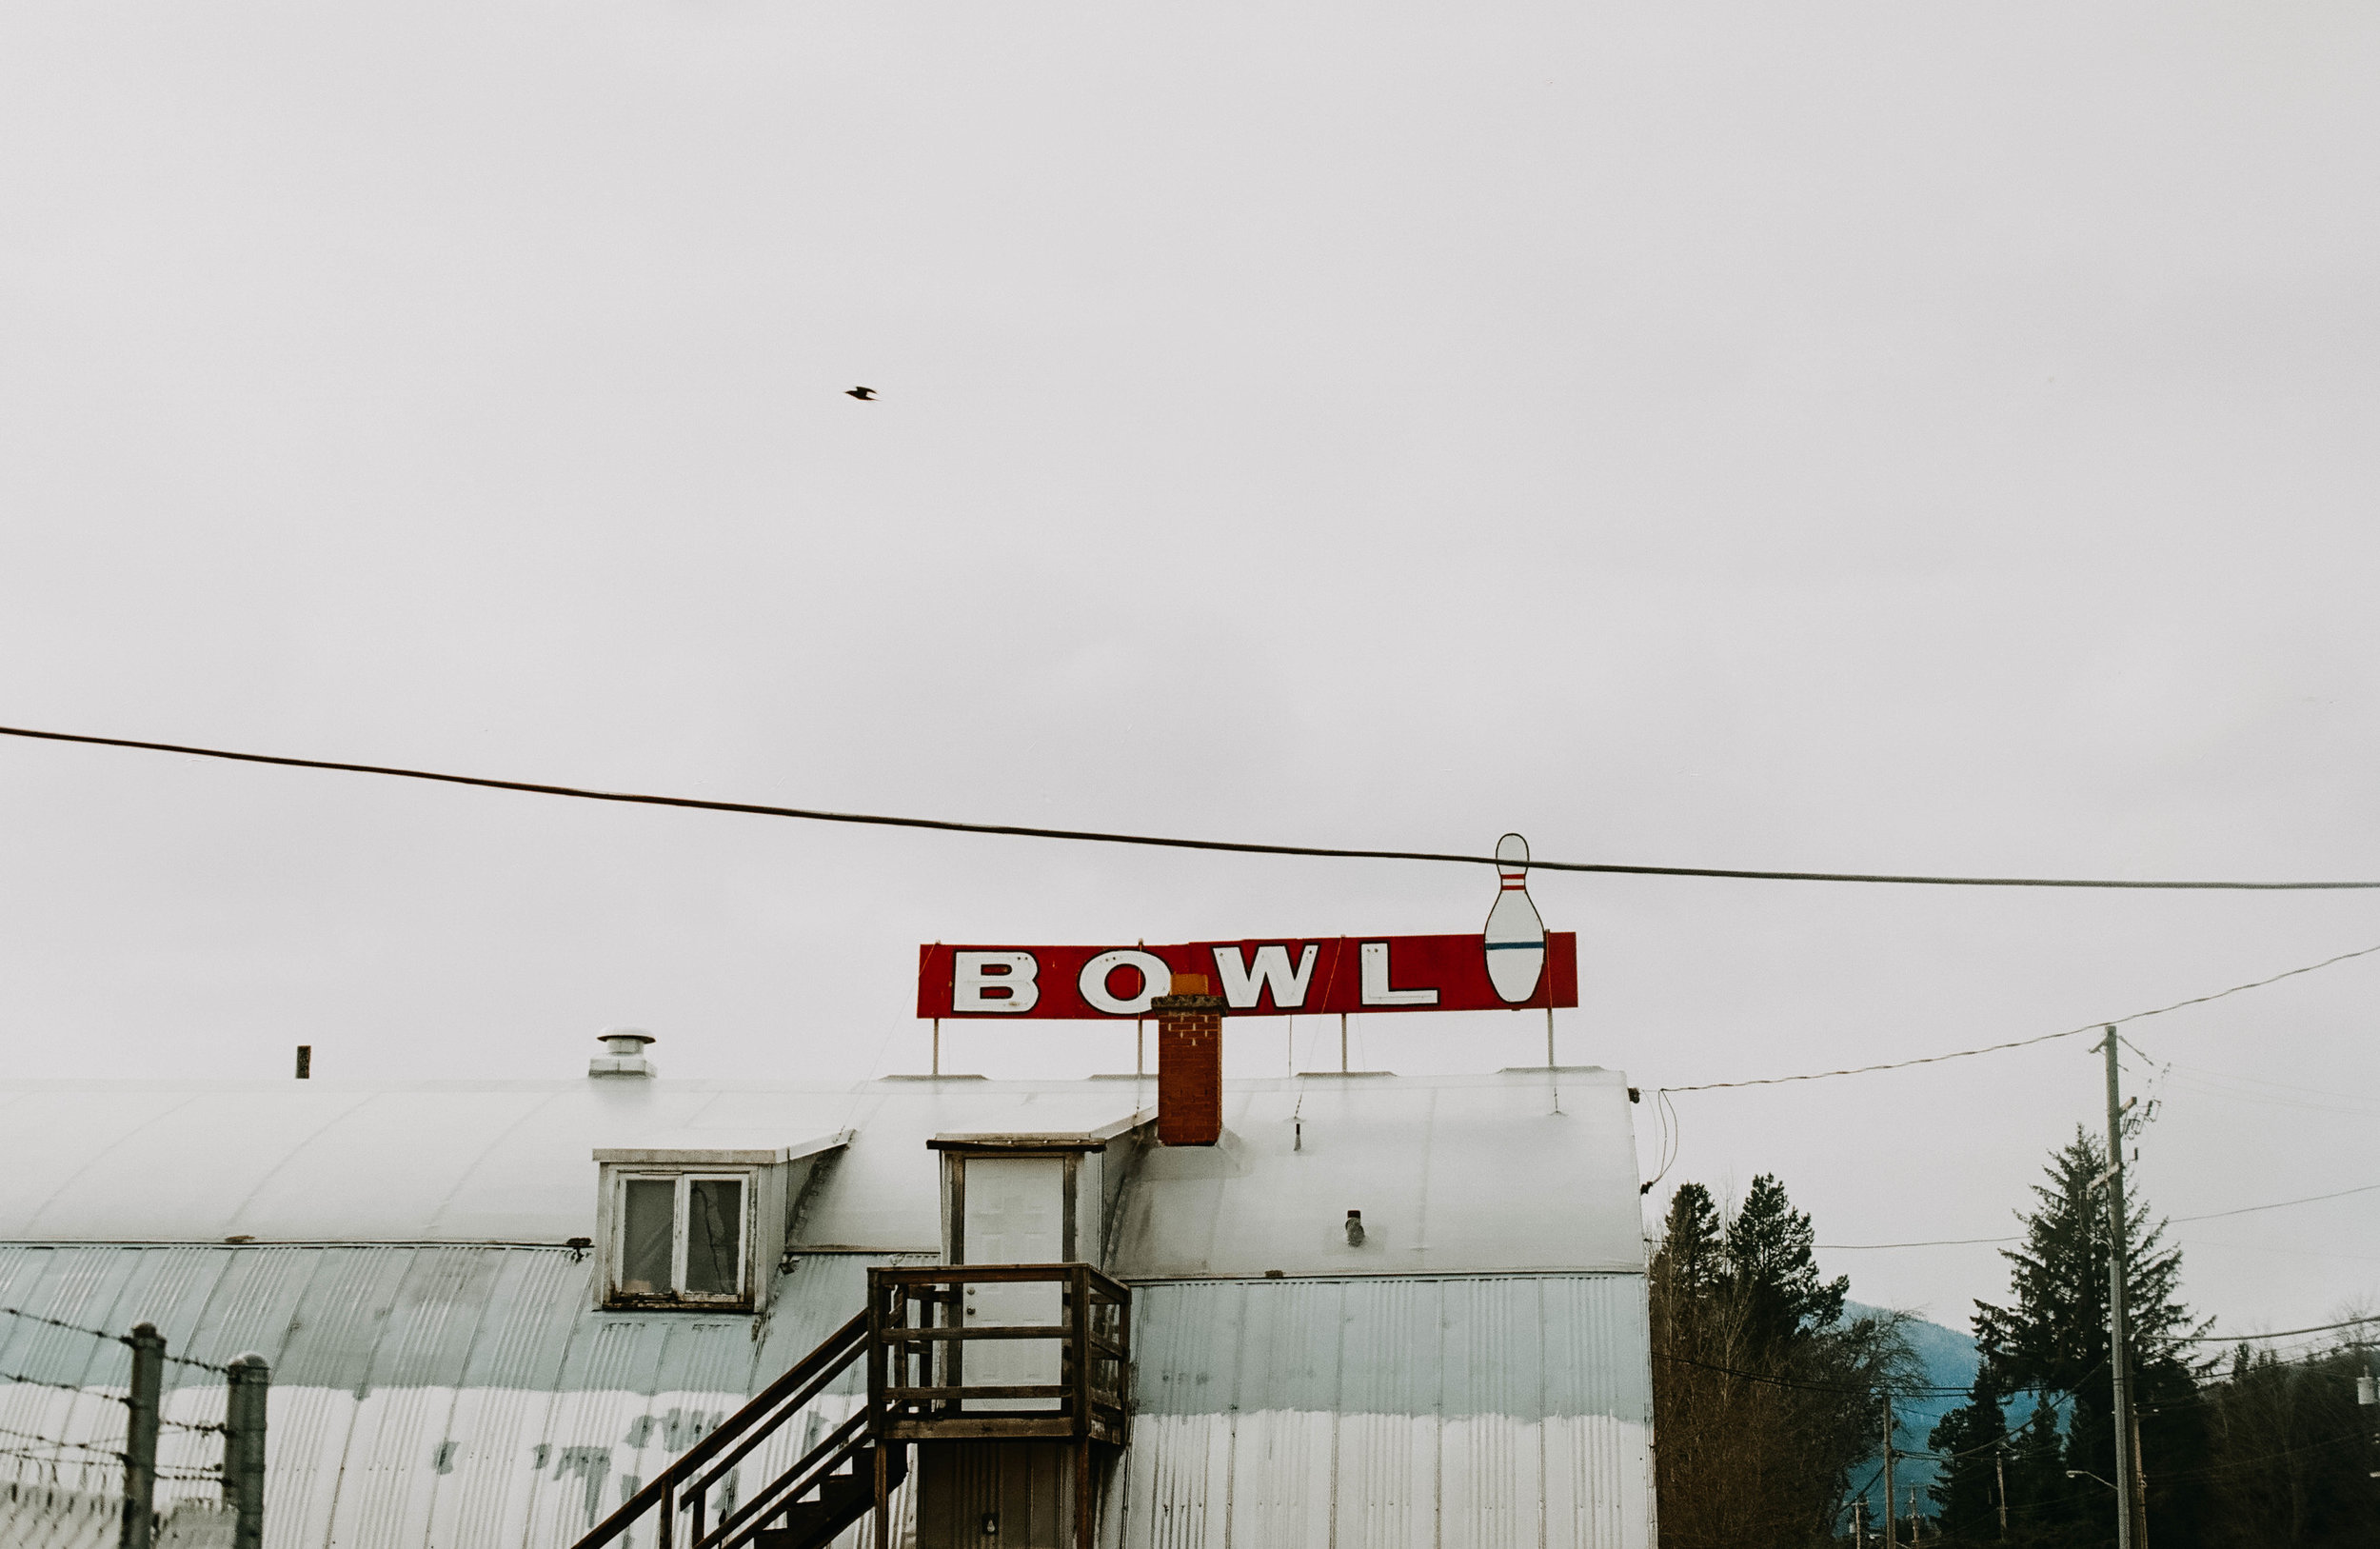 Quonset hut bowling alley, Terrace.